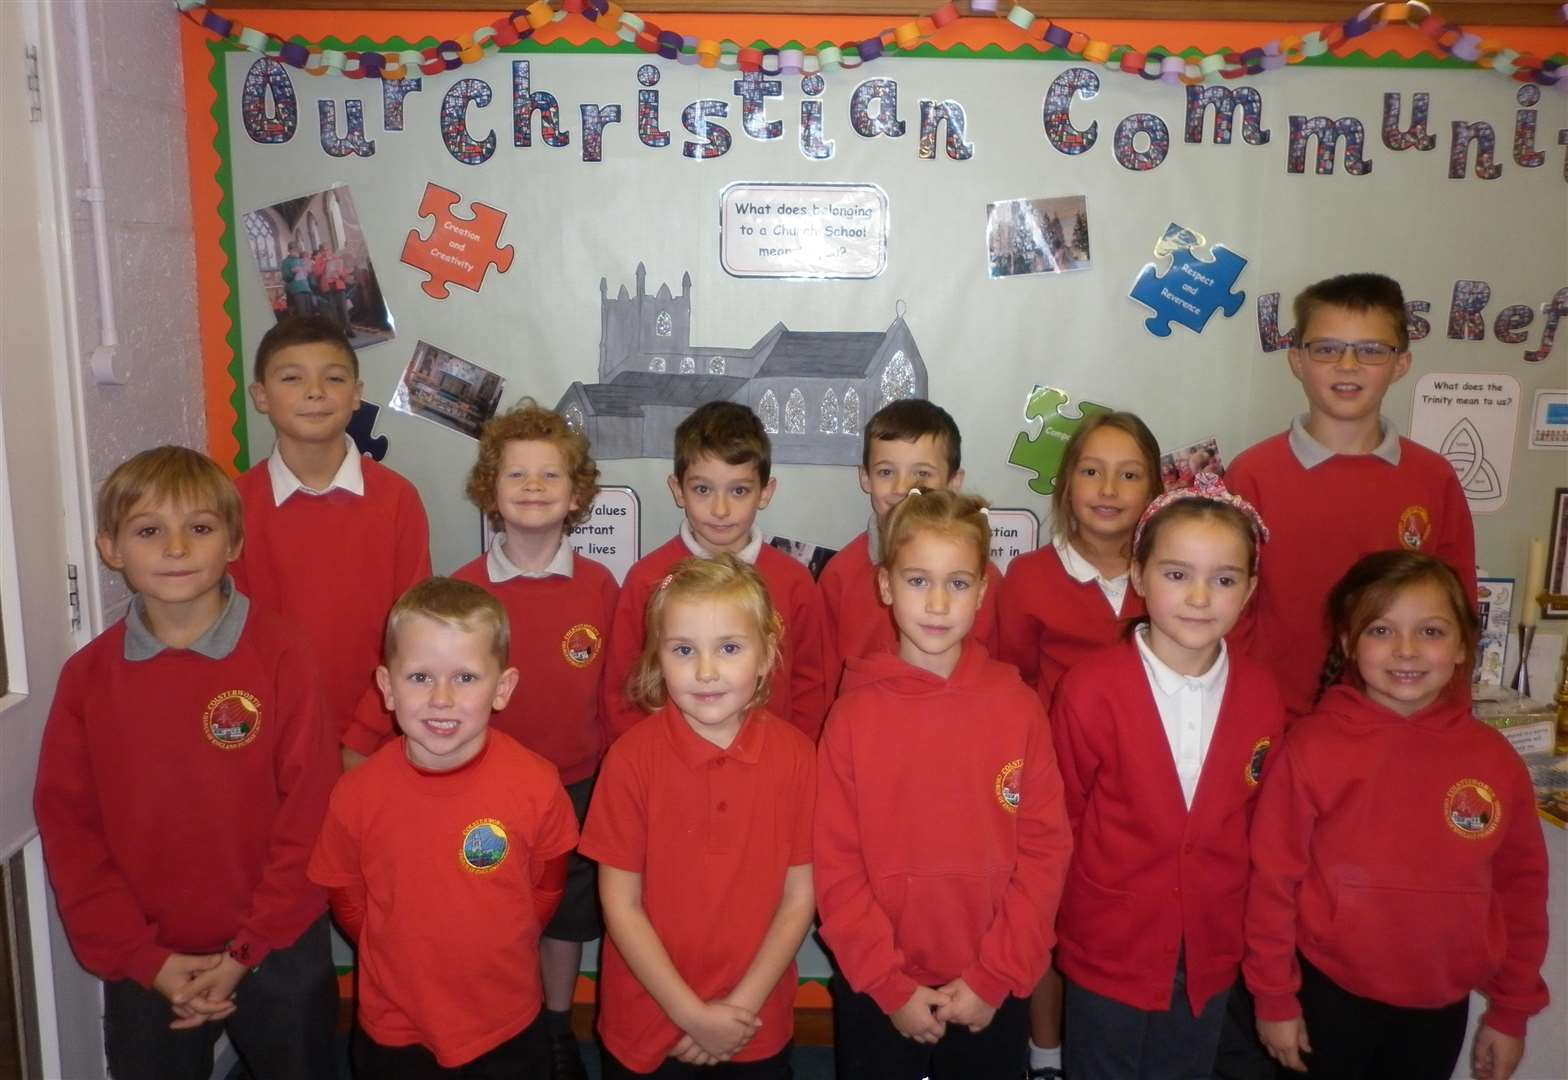 Colsterworth pupils host their own council elections